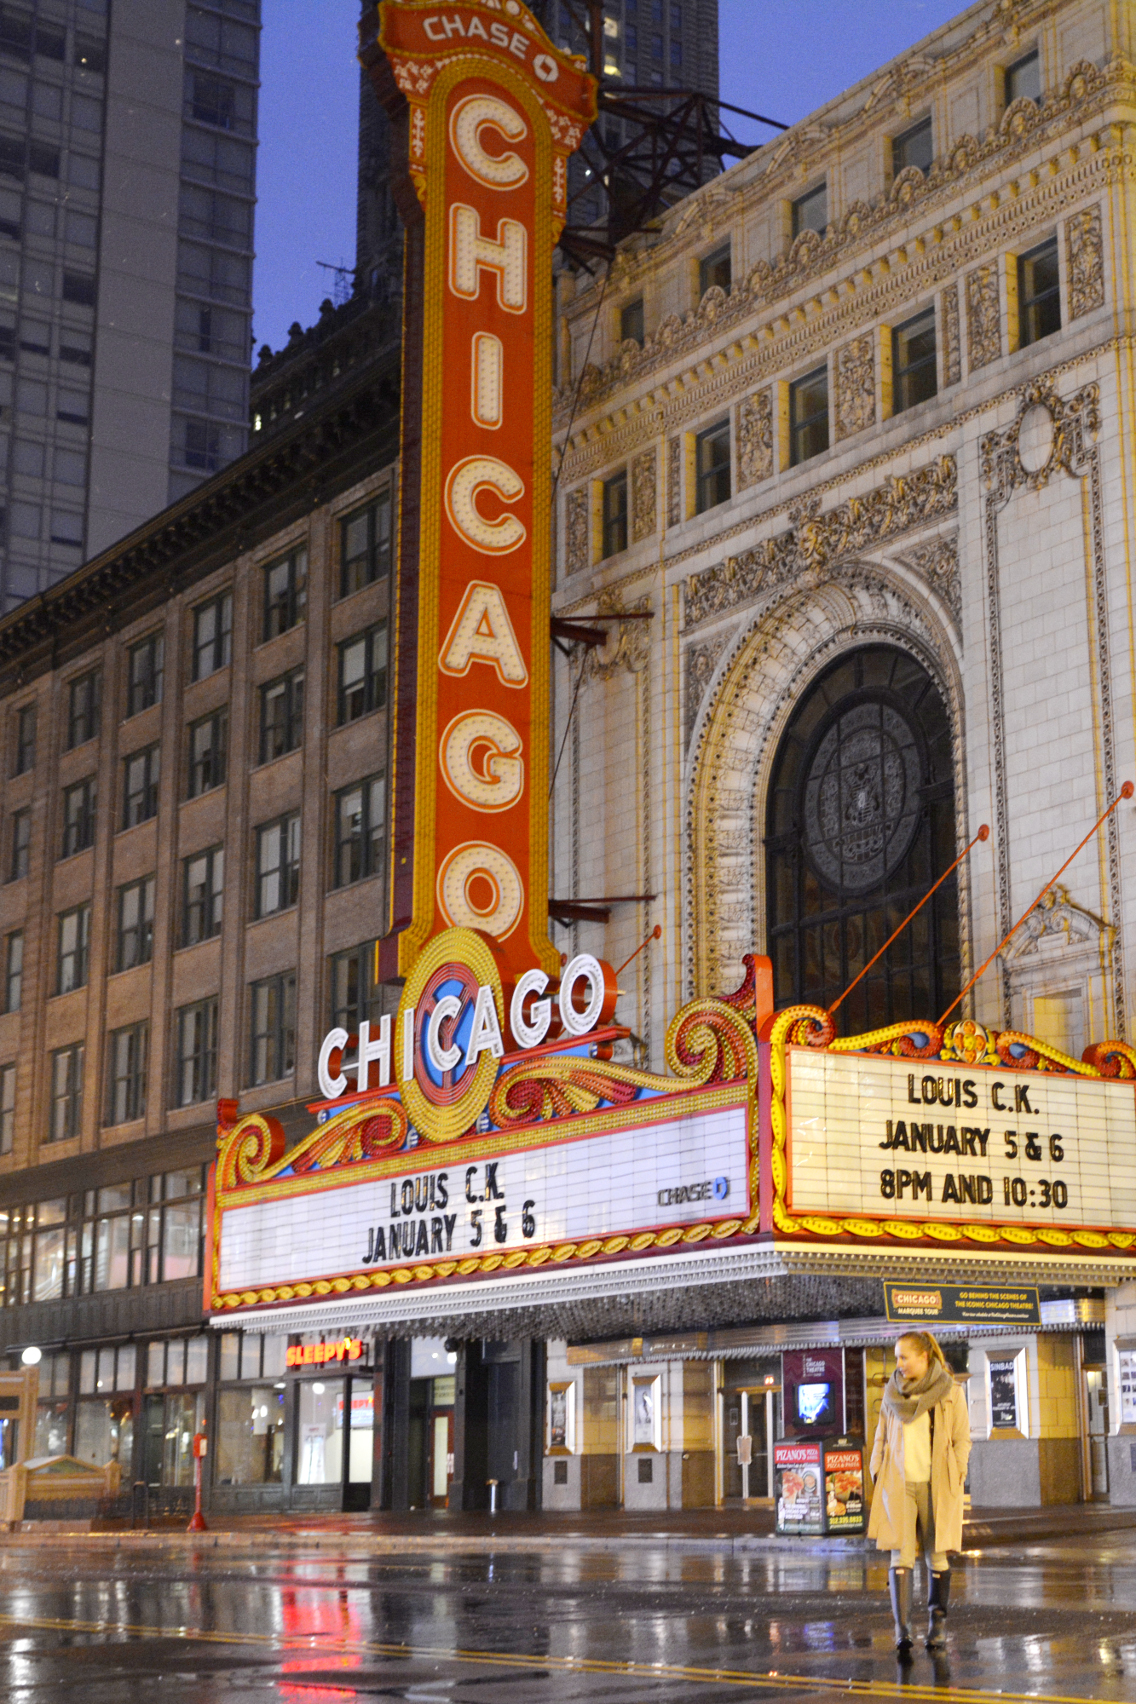 Chicago Theatre with Sed Bona 3